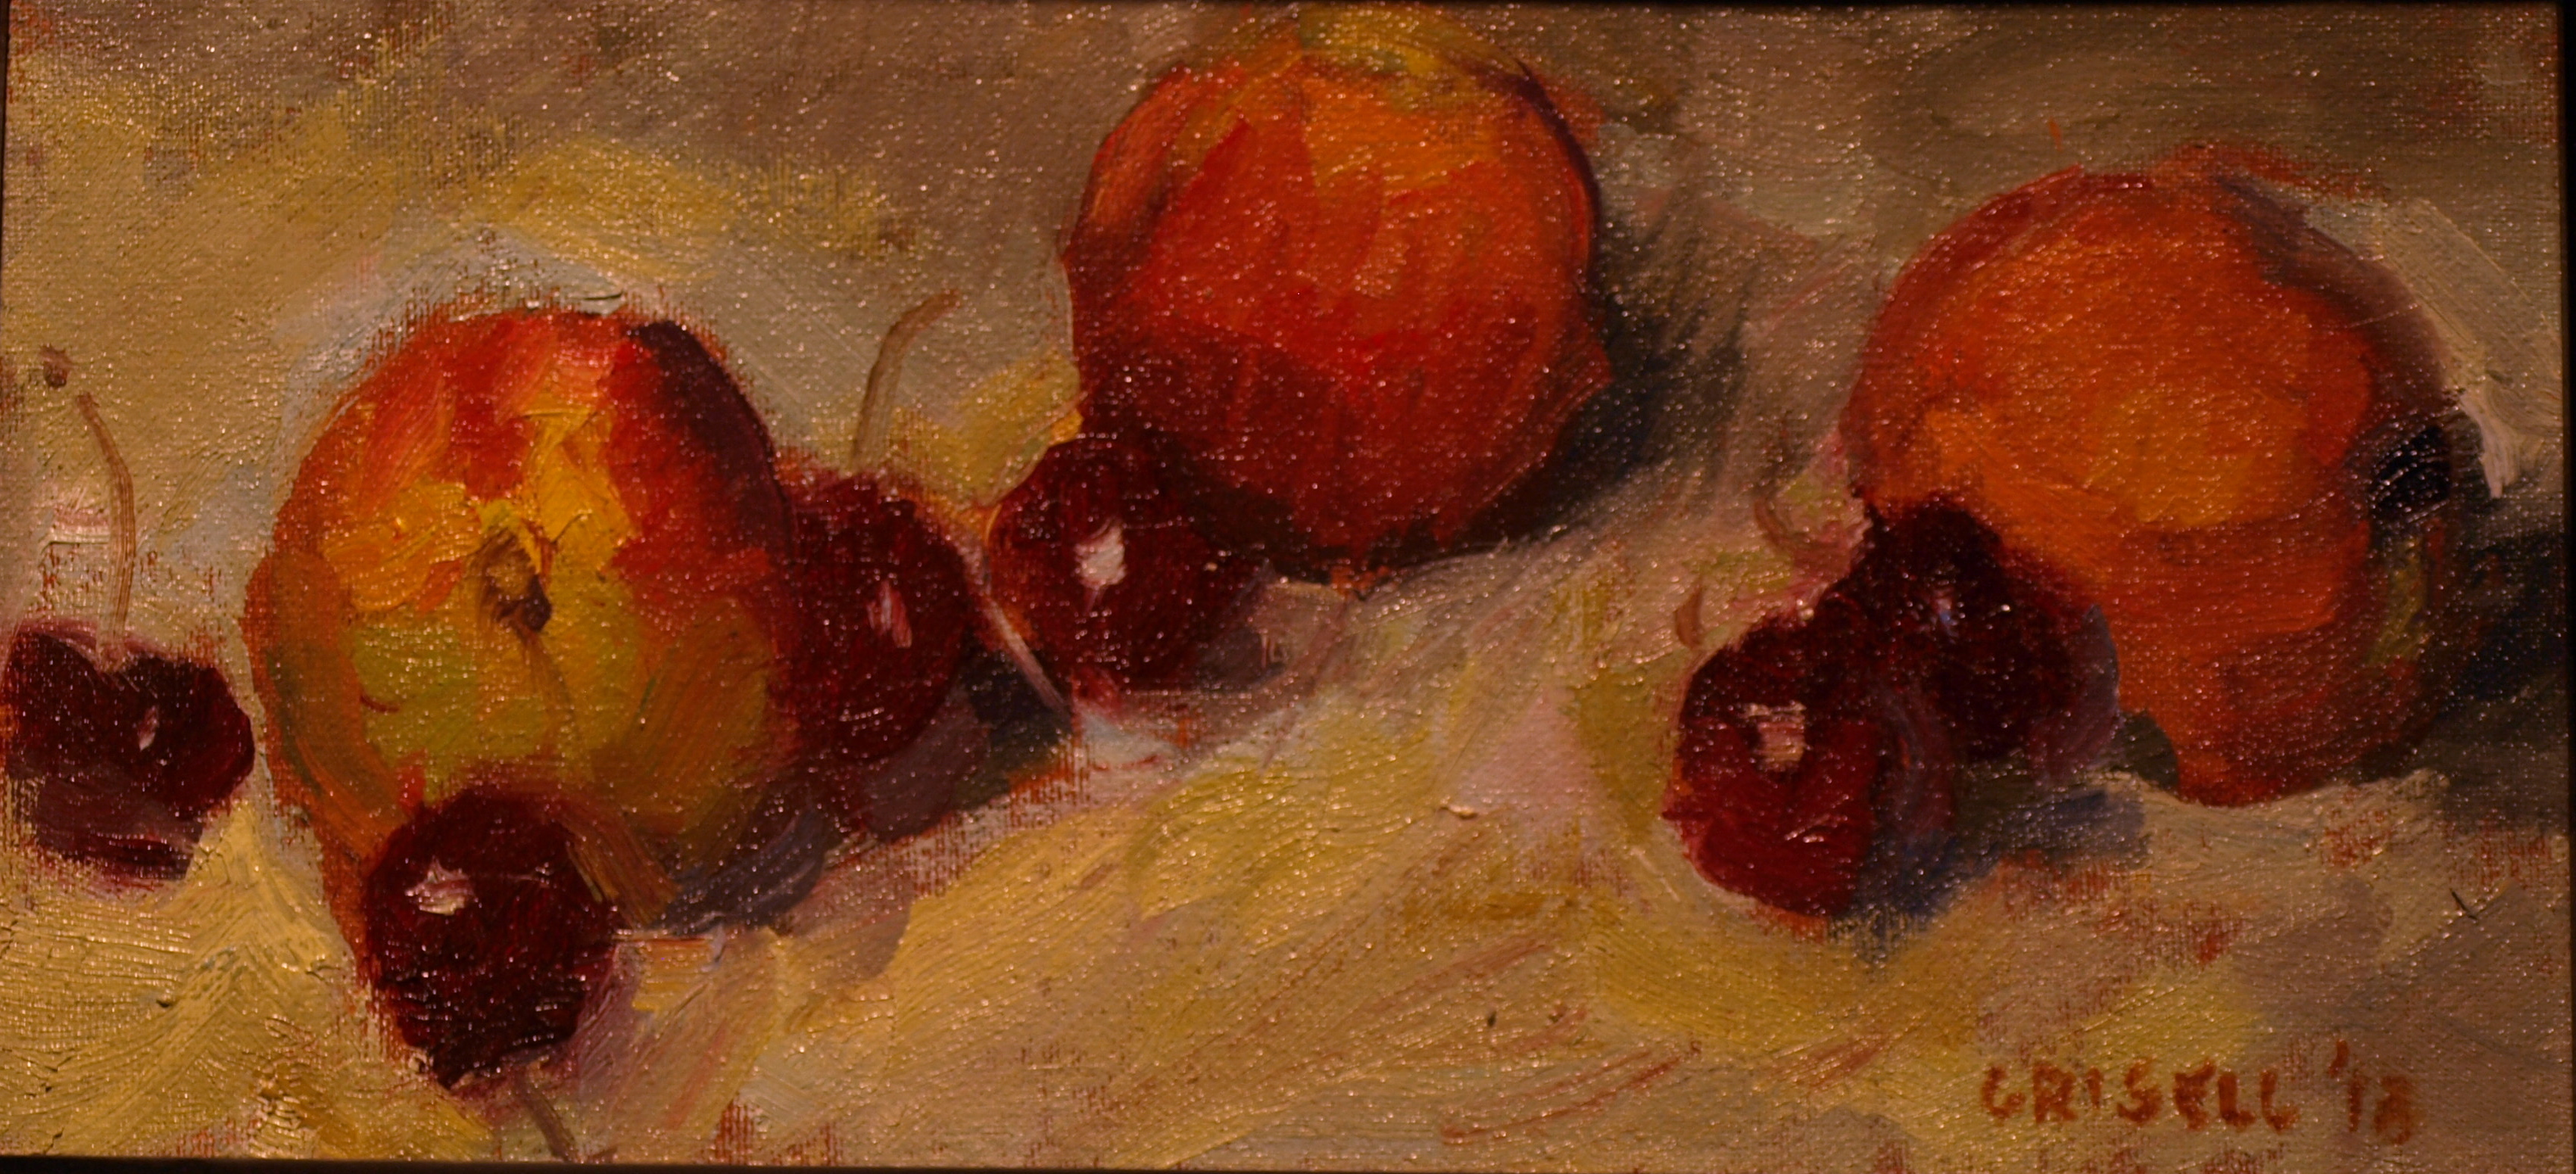 Peaches and Cherries, Oil on Canvas on Panel, 6 x 12 Inches, by Susan Grisell, $200